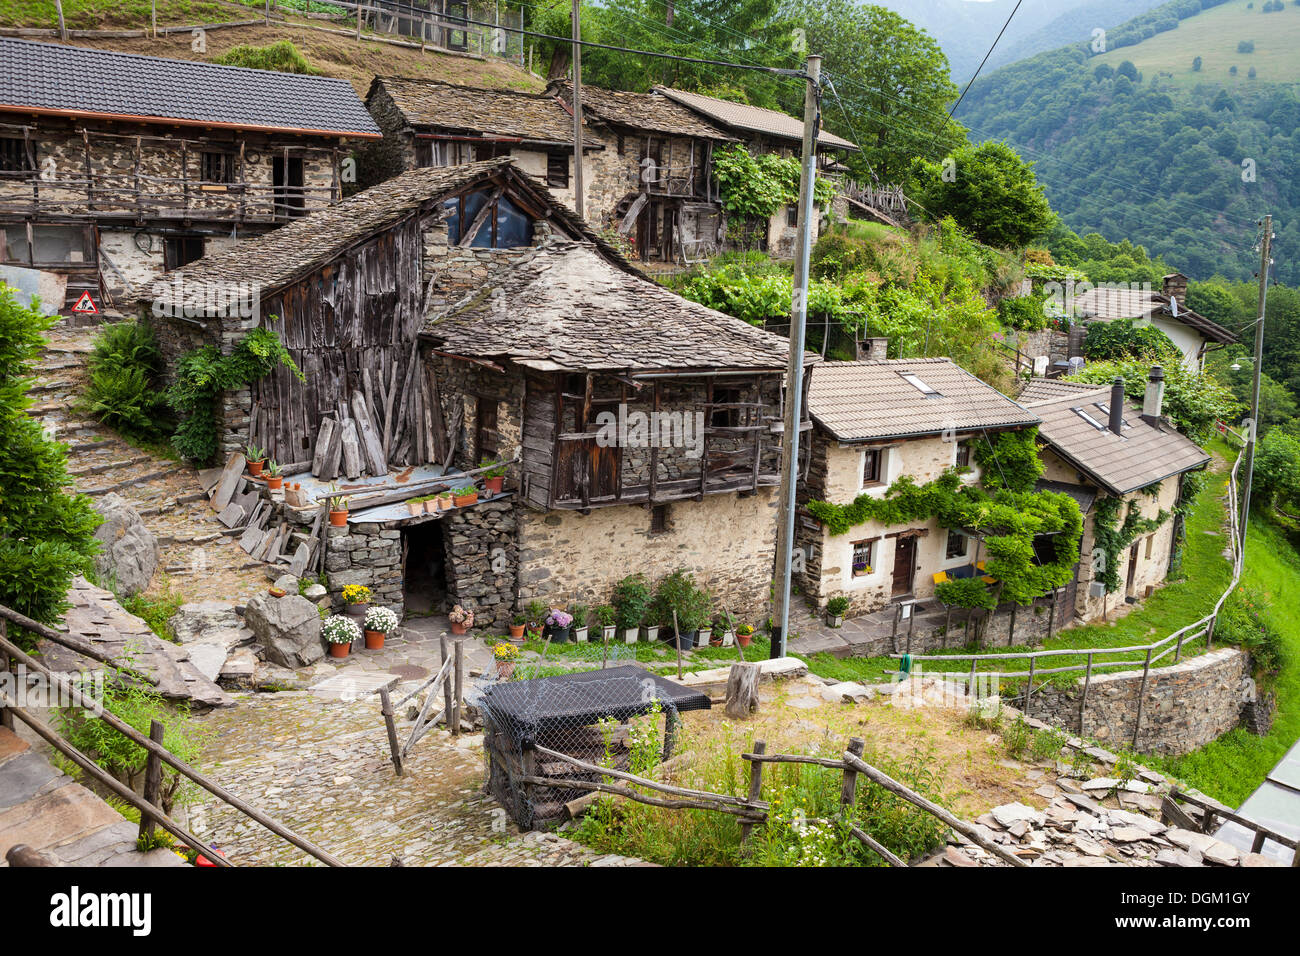 Village of Indemini, Ticino, Switzerland, Europe - Stock Image